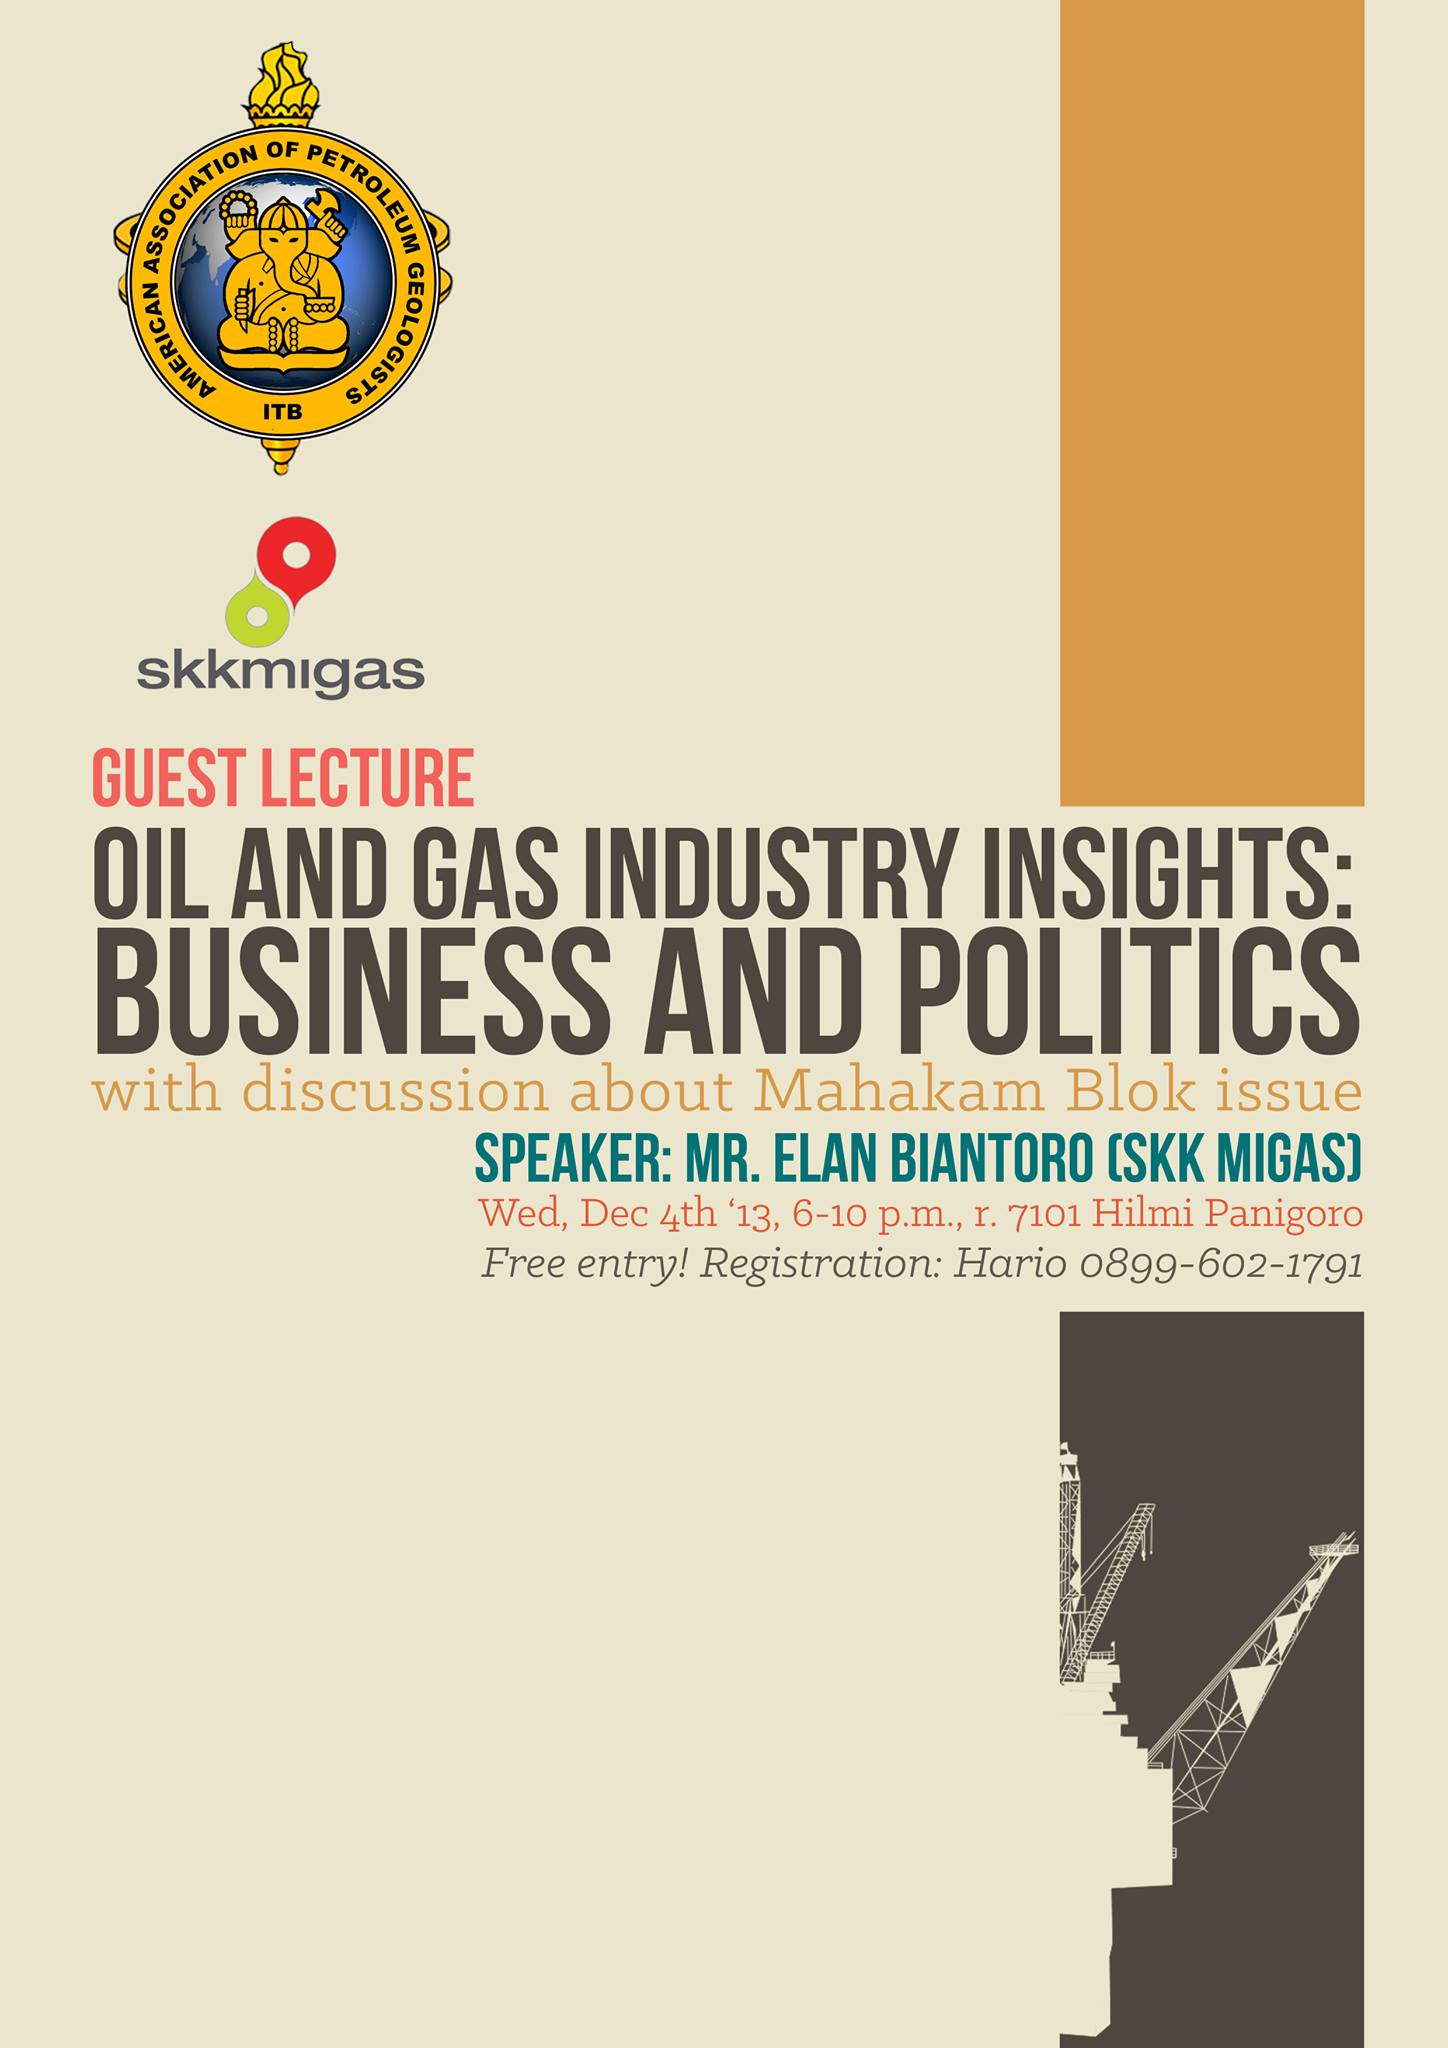 Publication of  Lecture and Discussion on Petroleum insight: Business and Politics